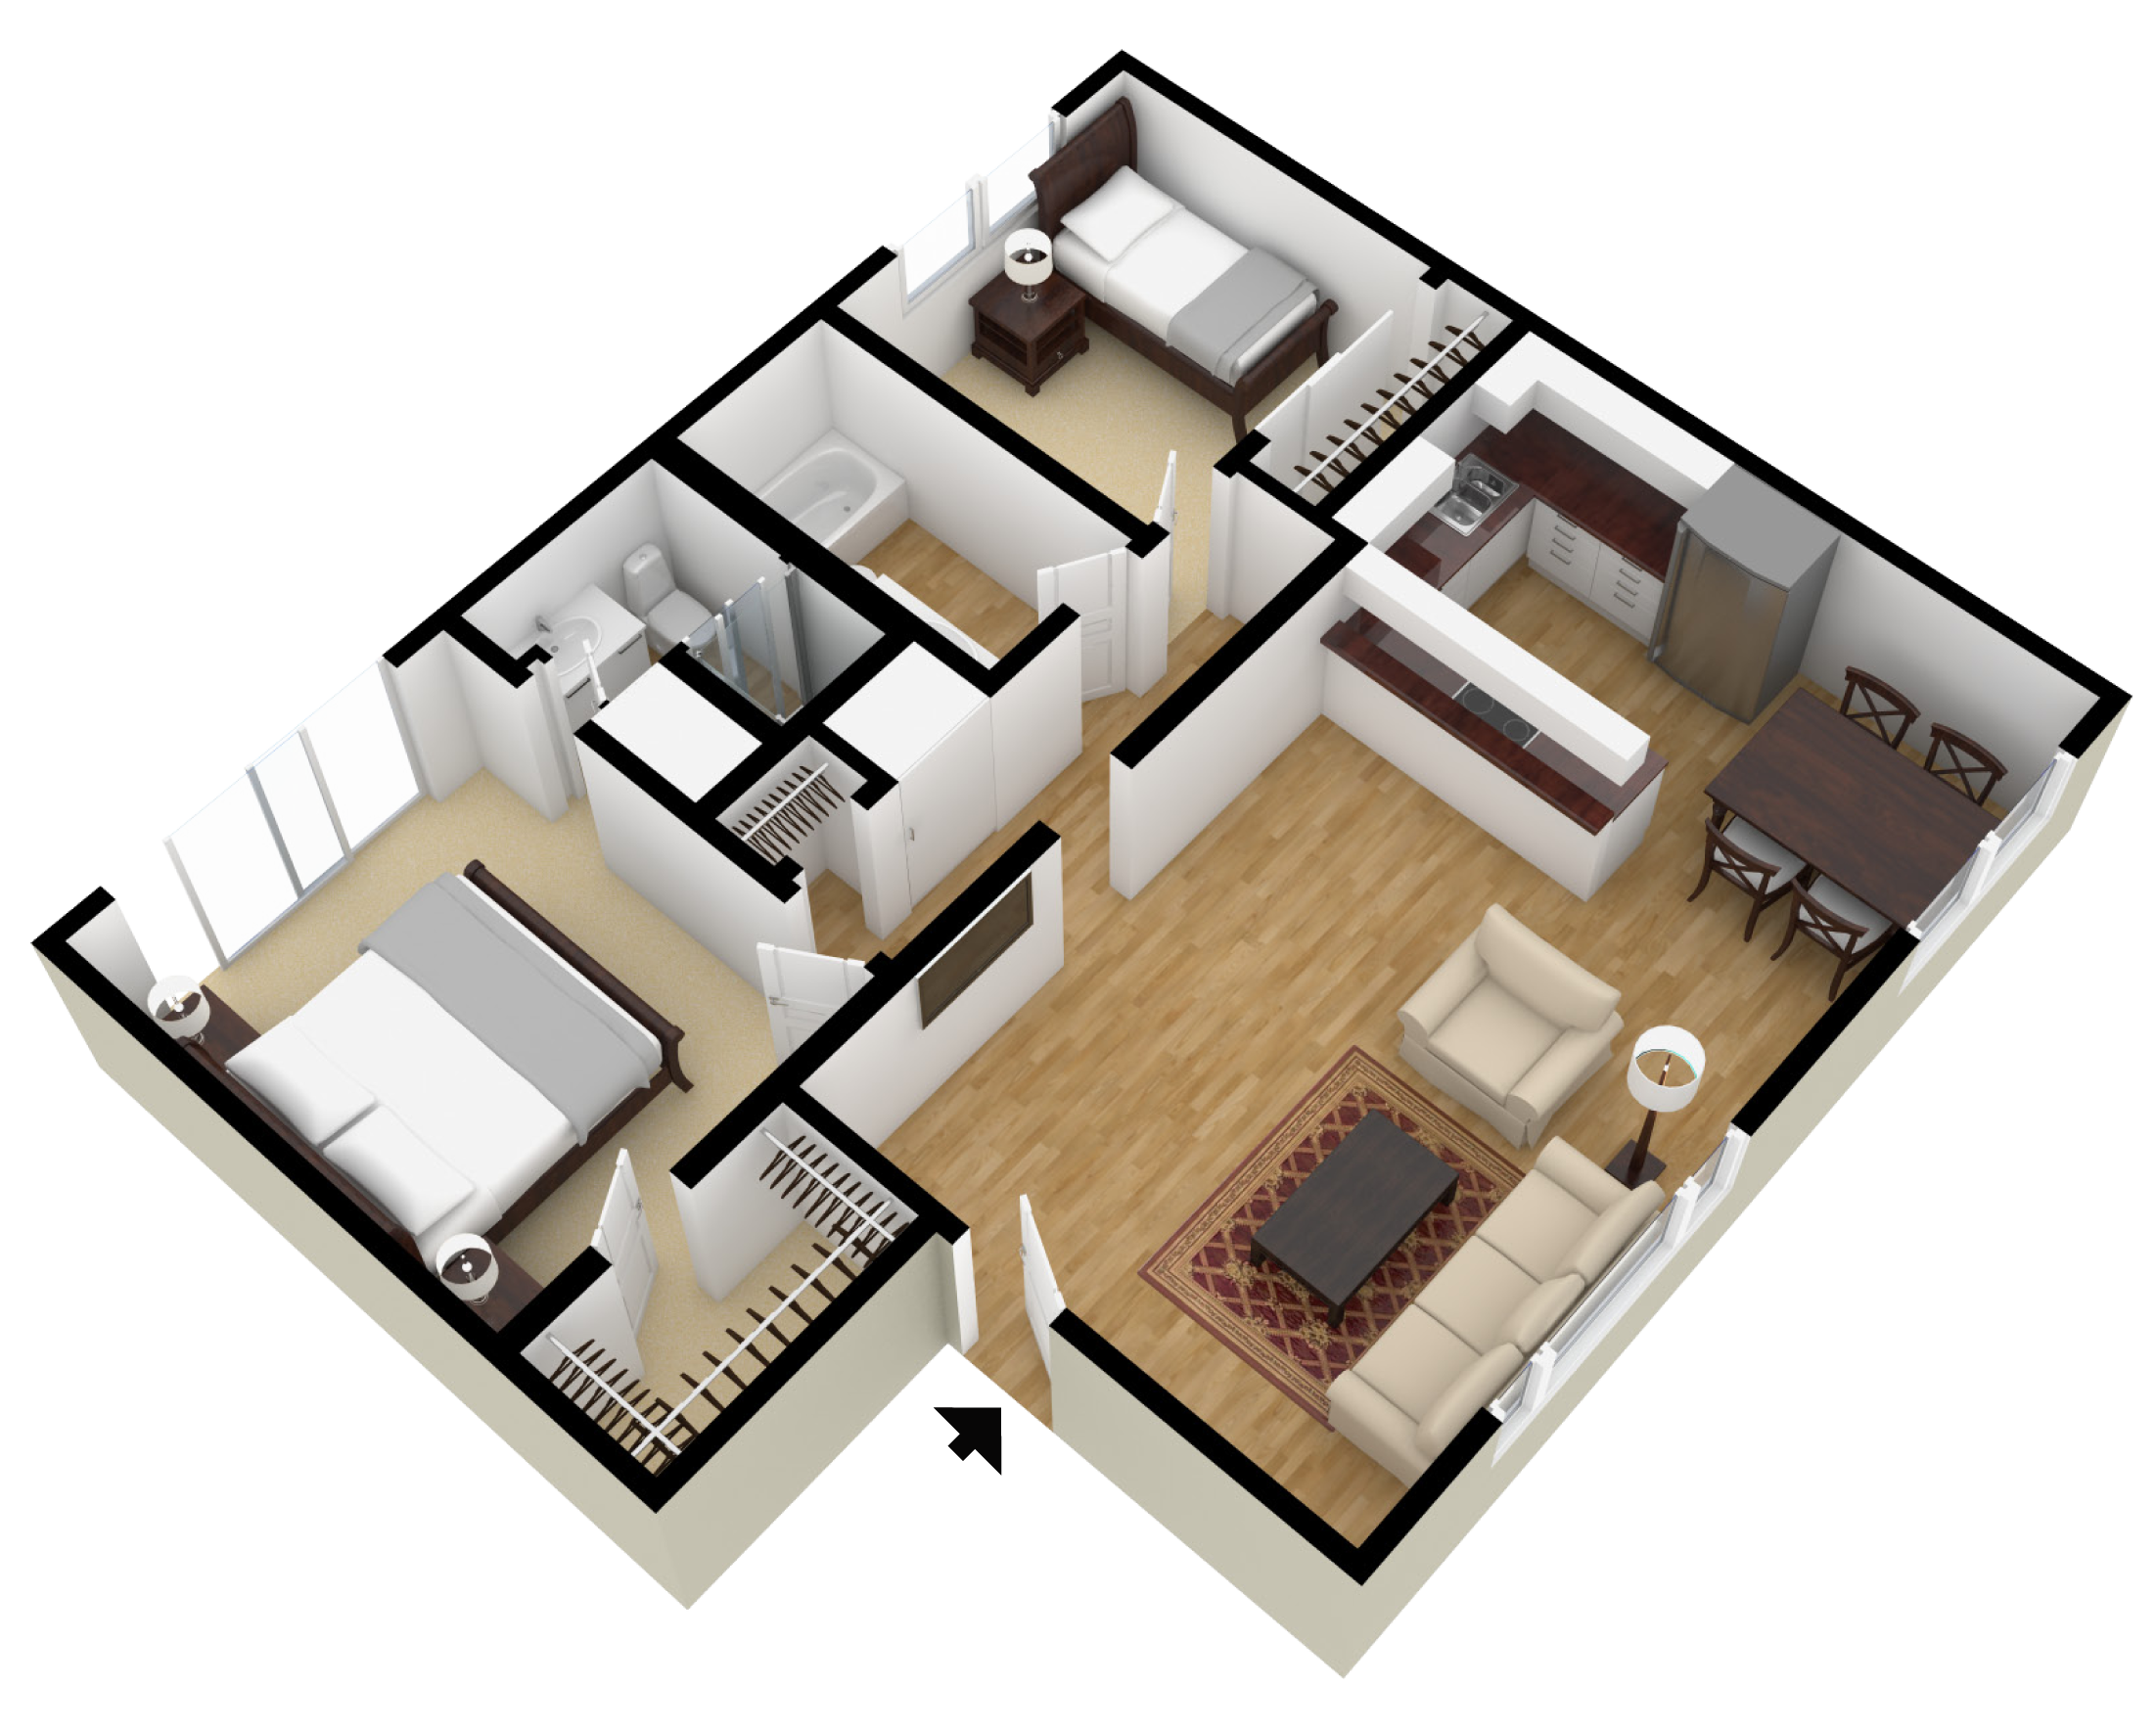 Studio 1 2 bedroom floor plans city plaza apartments for 3 bedroom ensuite house plans